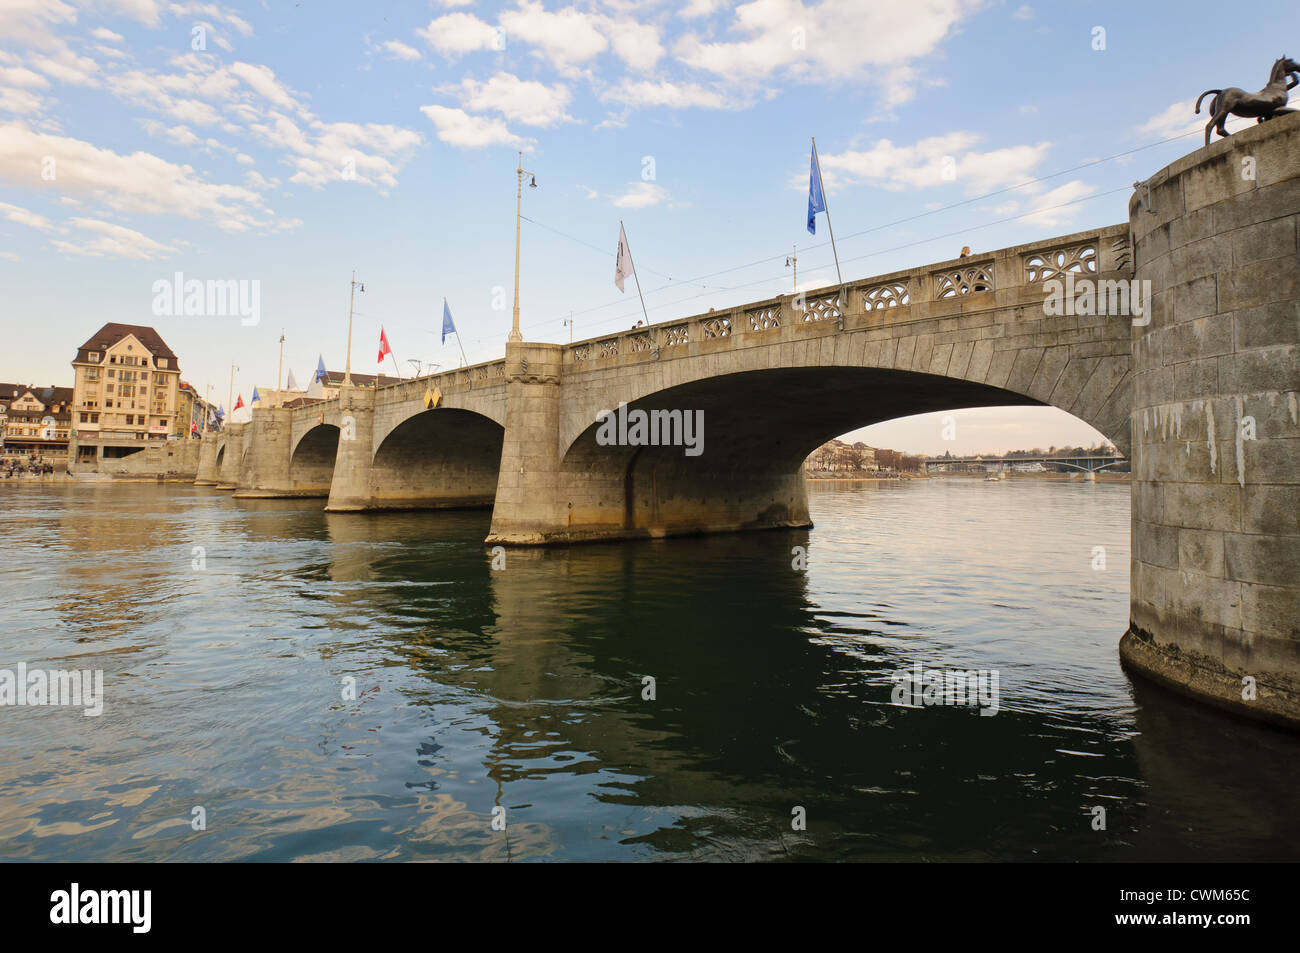 Mittlere Bruecke (Bridge), Basel. Switzerland. - Stock Image